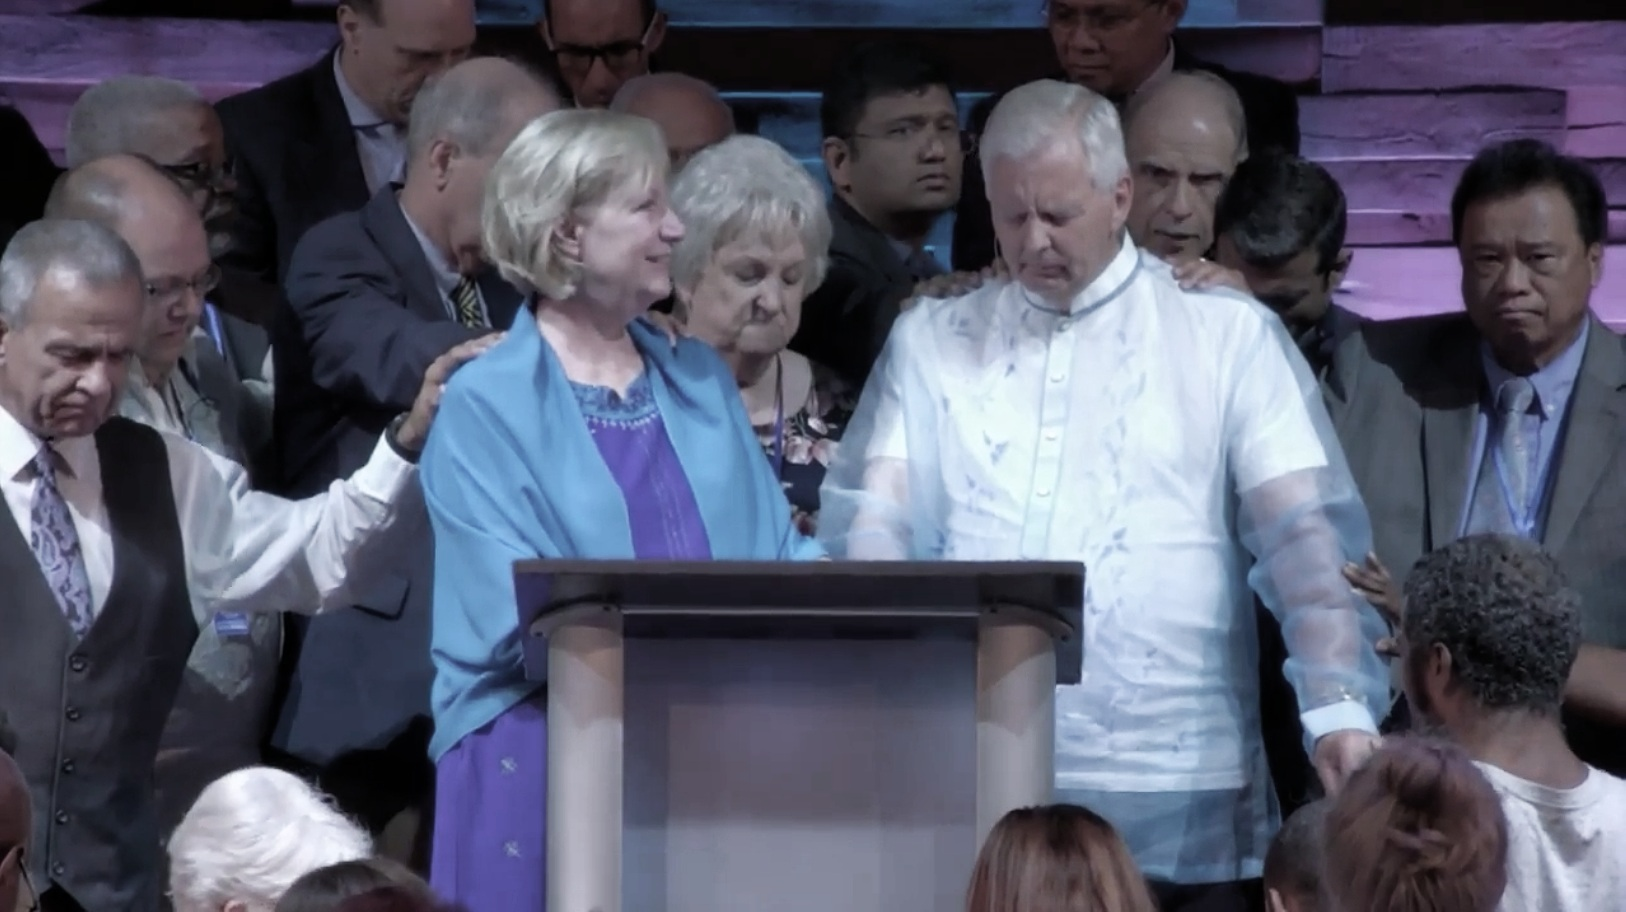 Prayer During Worship Service on Sunday, July 8th